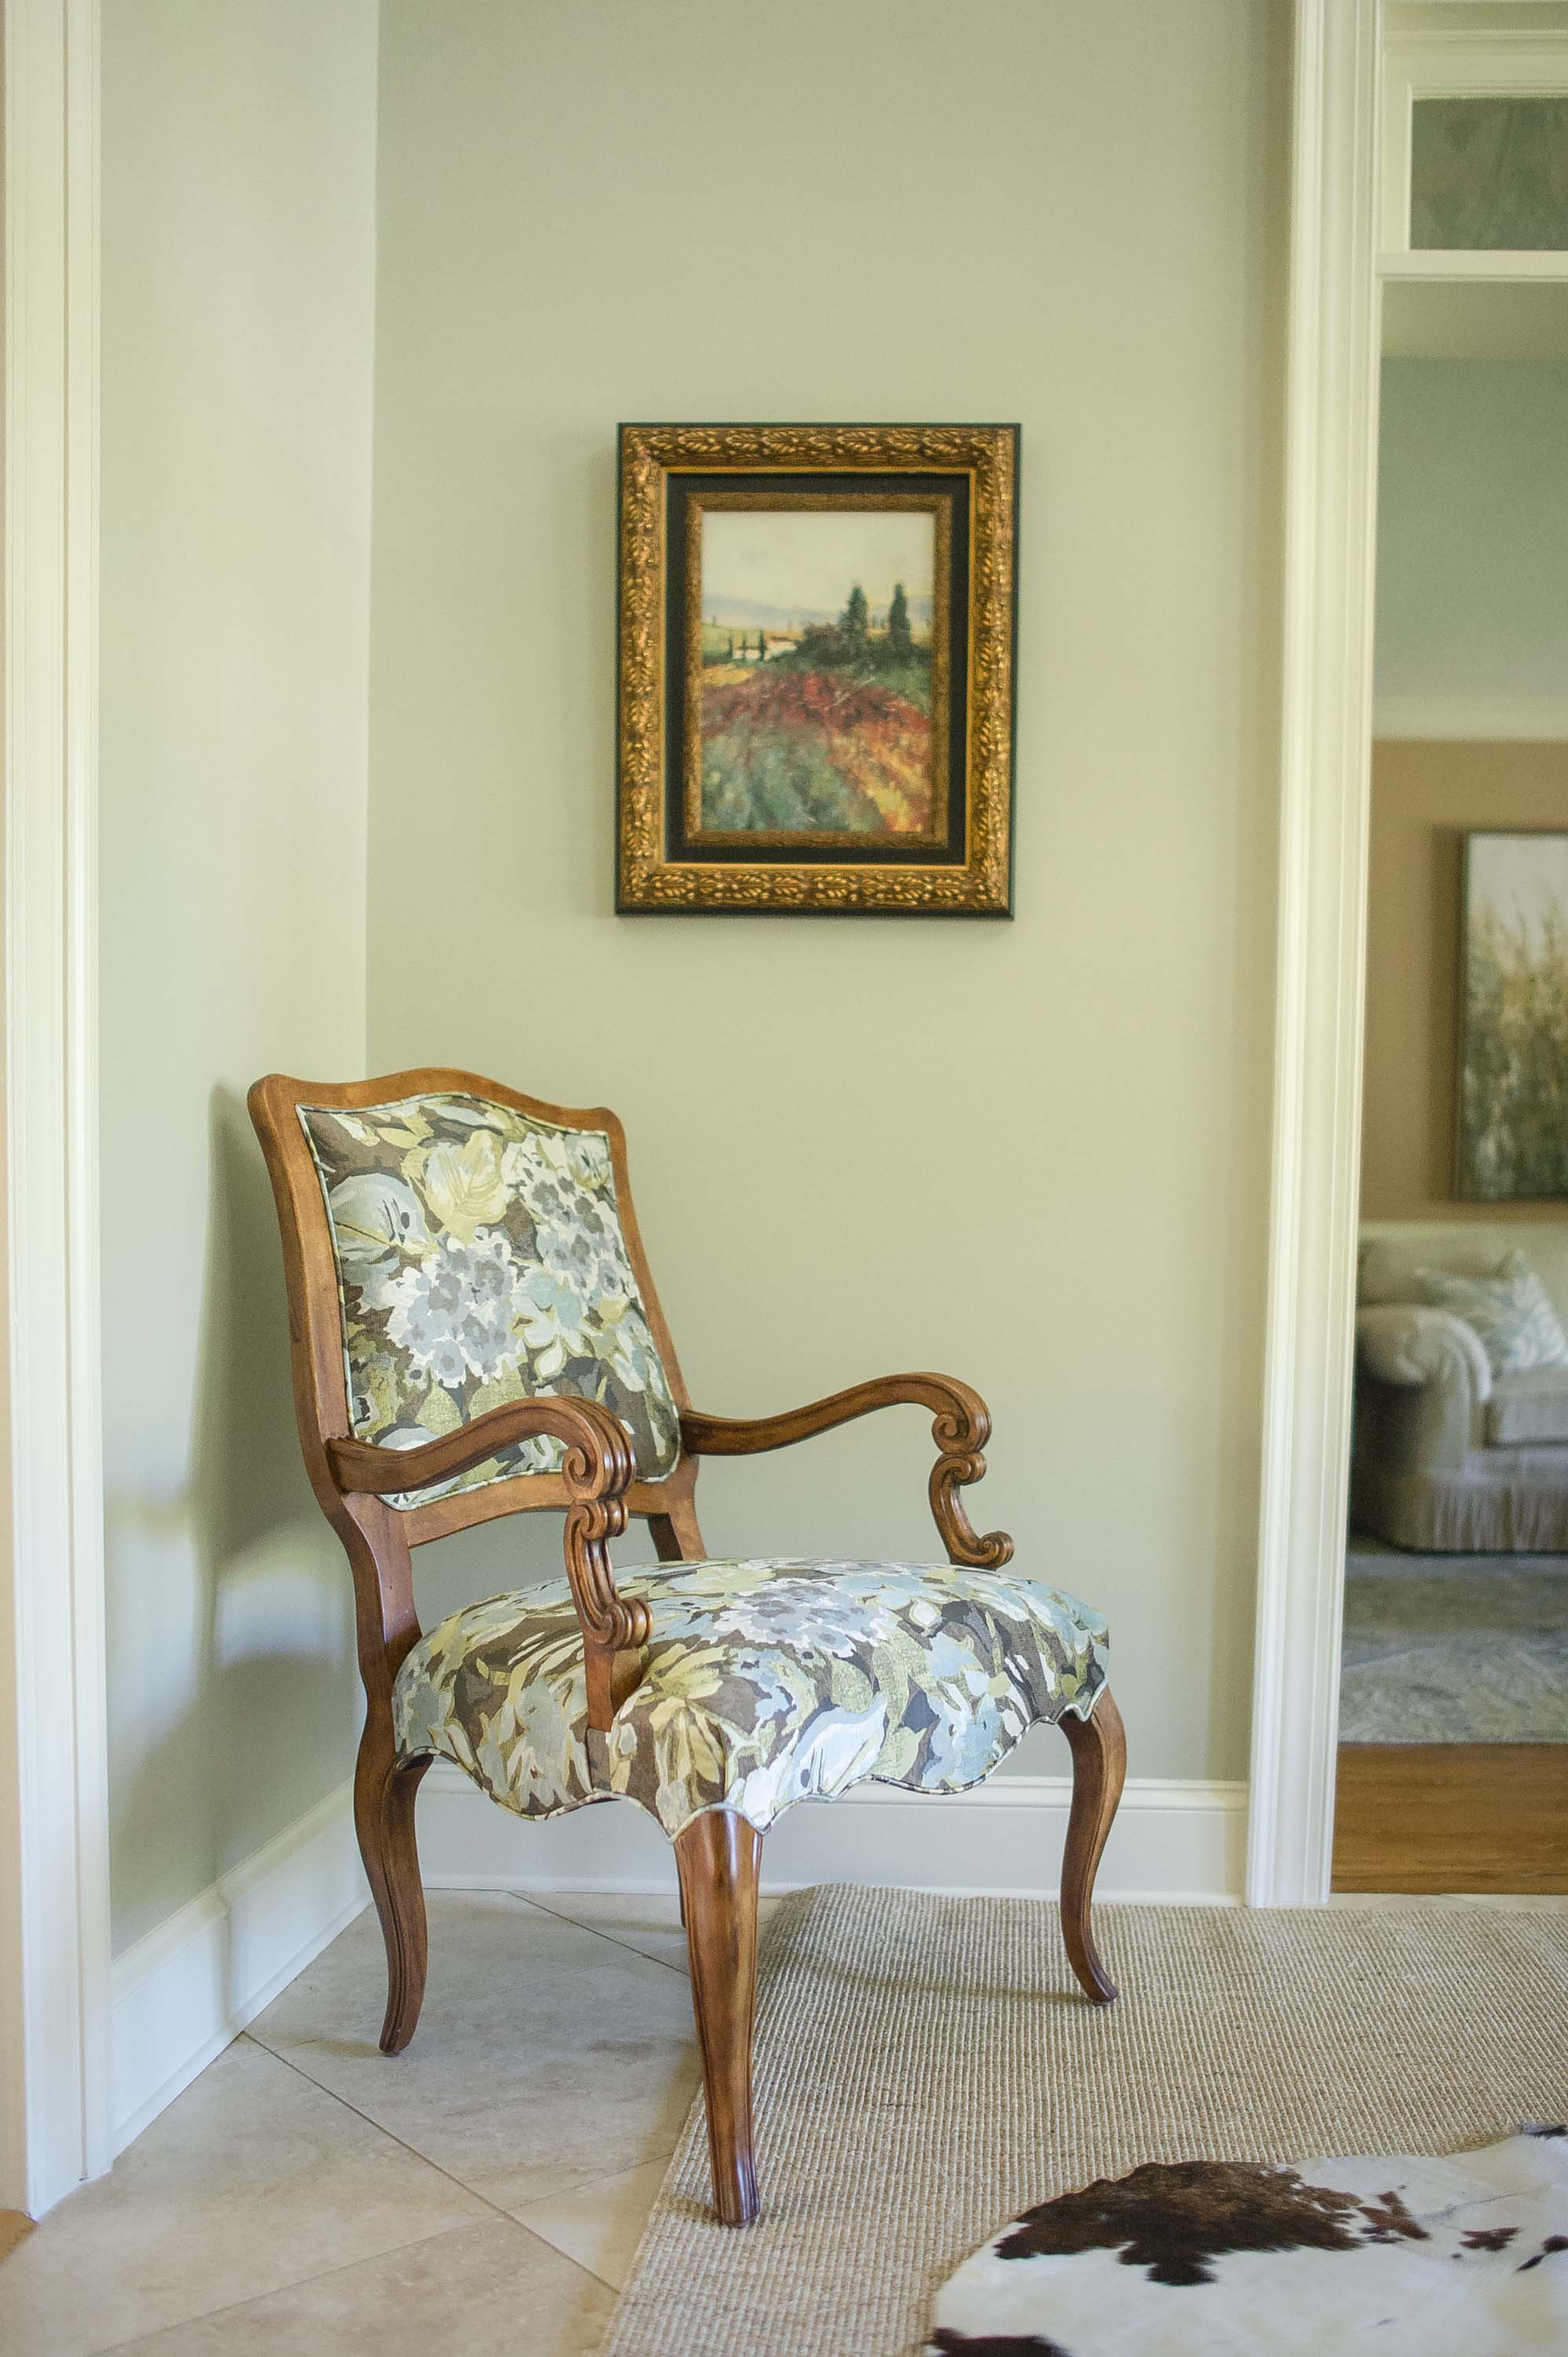 House interior with wooden armchair and a frame on the wall